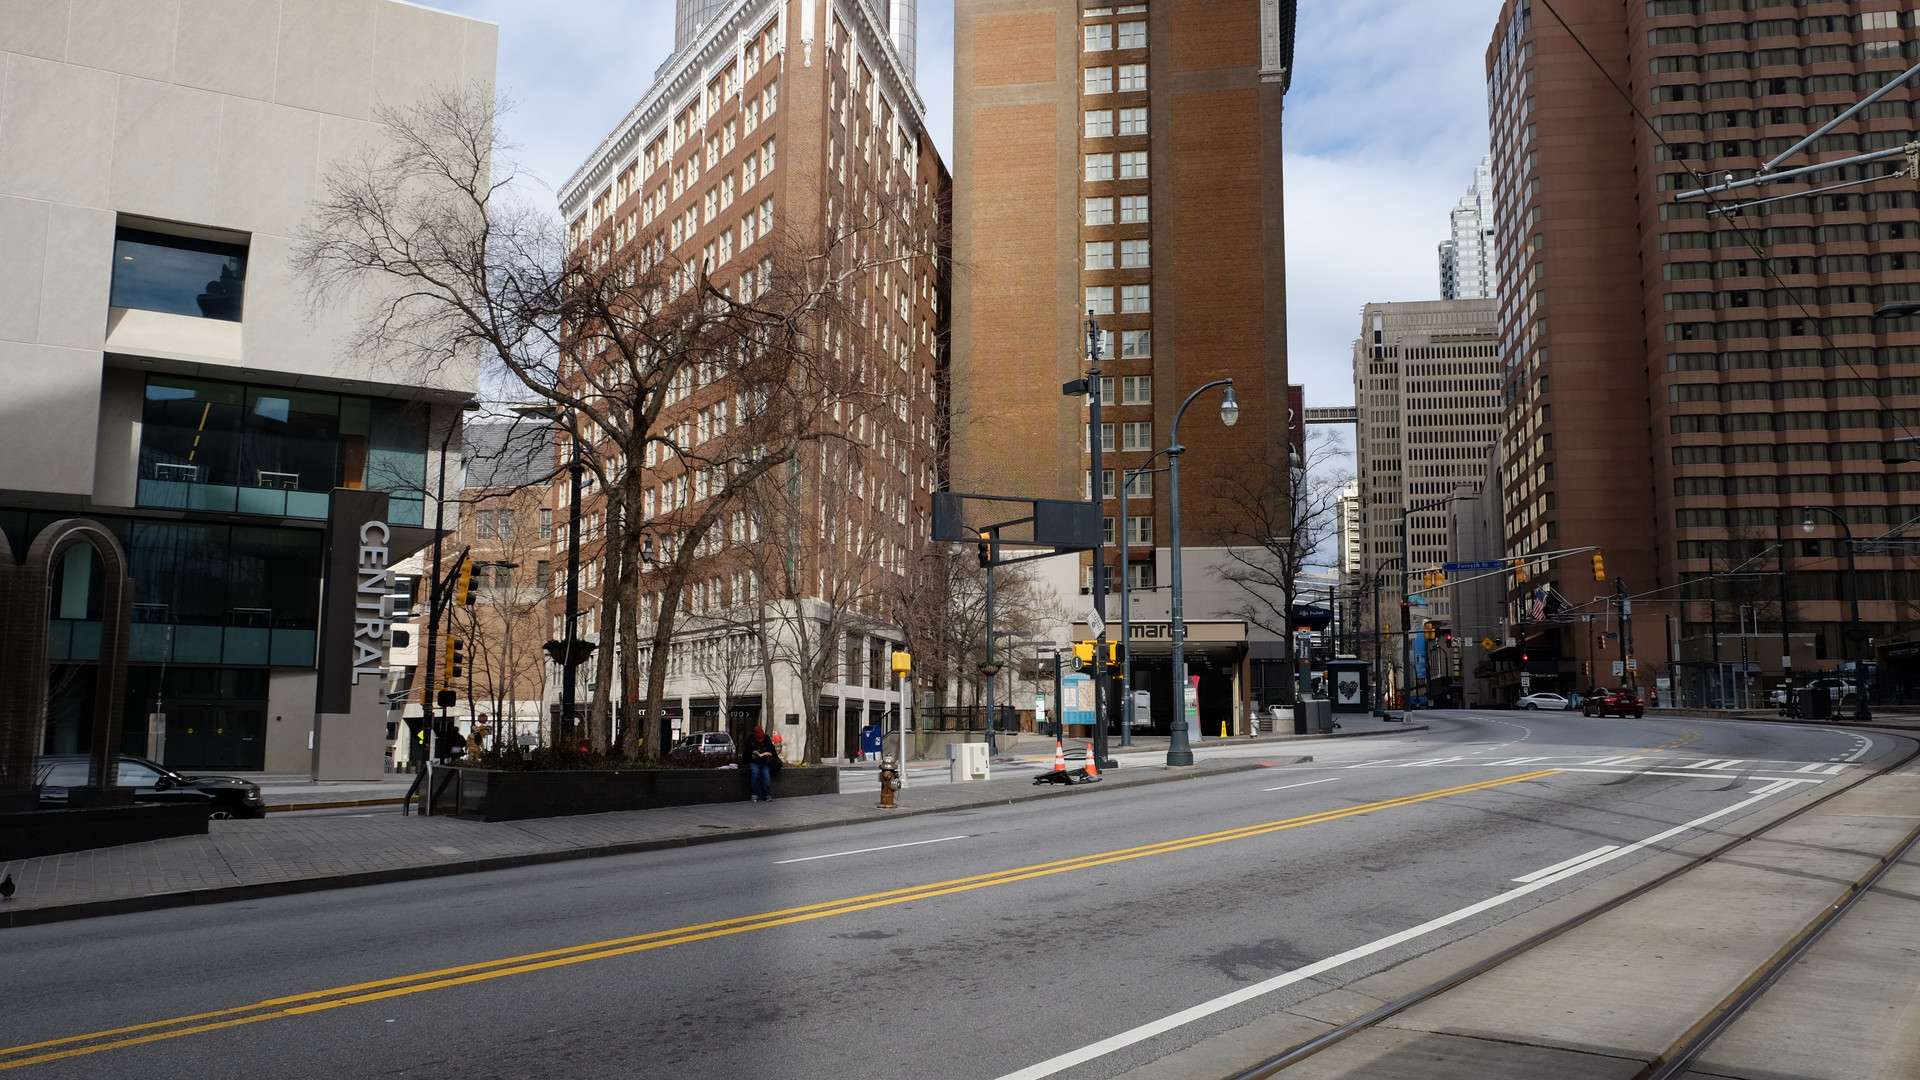 Peachtree Street near Margaret Mitchell Square facing the Central Library and Peachtree Center MARTA Station